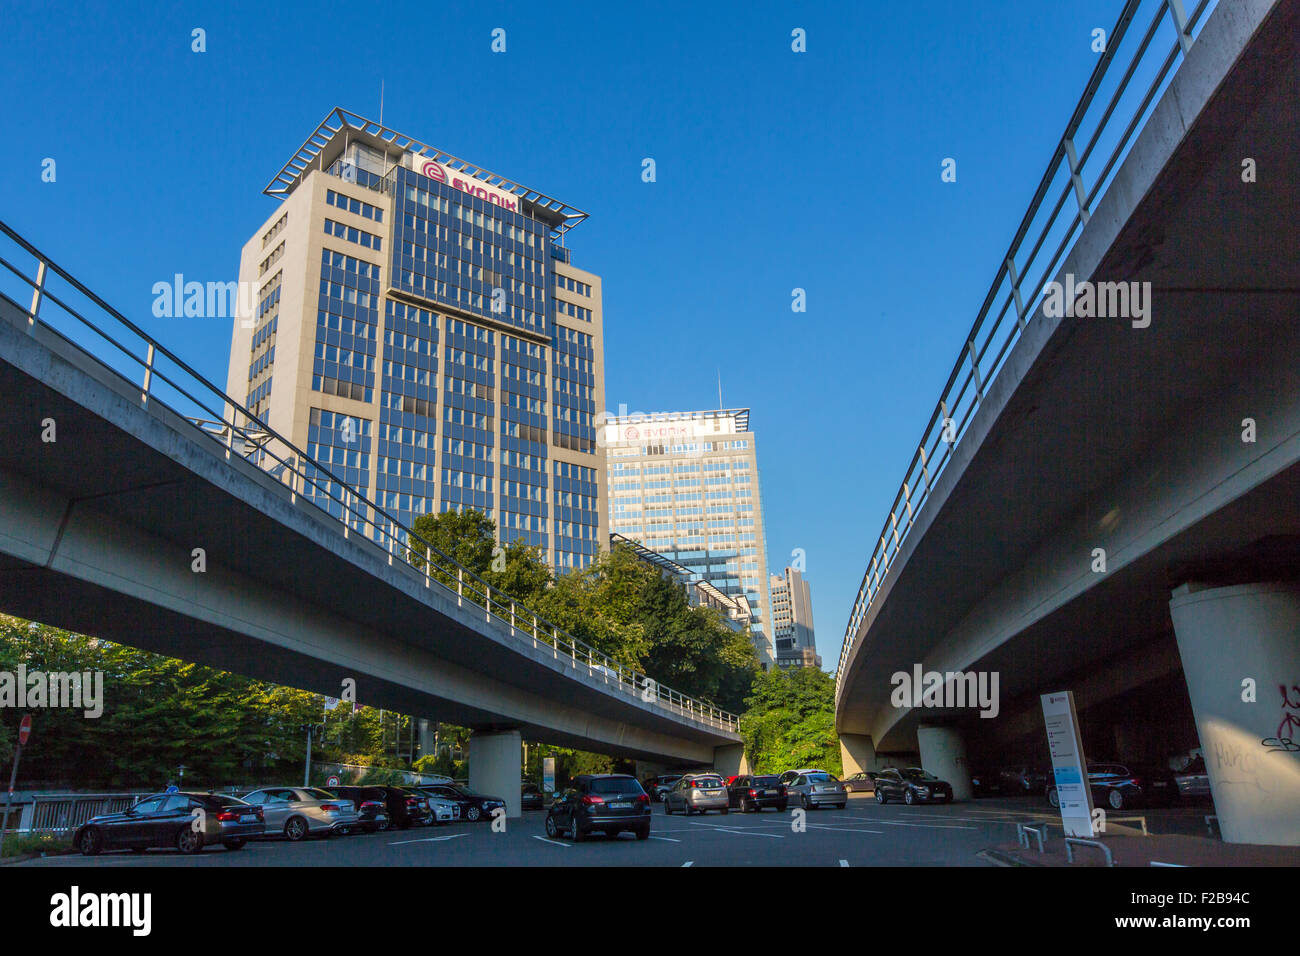 City skyline of Essen, Germany, A40 Autobahn, motorway, company headquarter of EVONIK industries and RWE Power company, - Stock Image